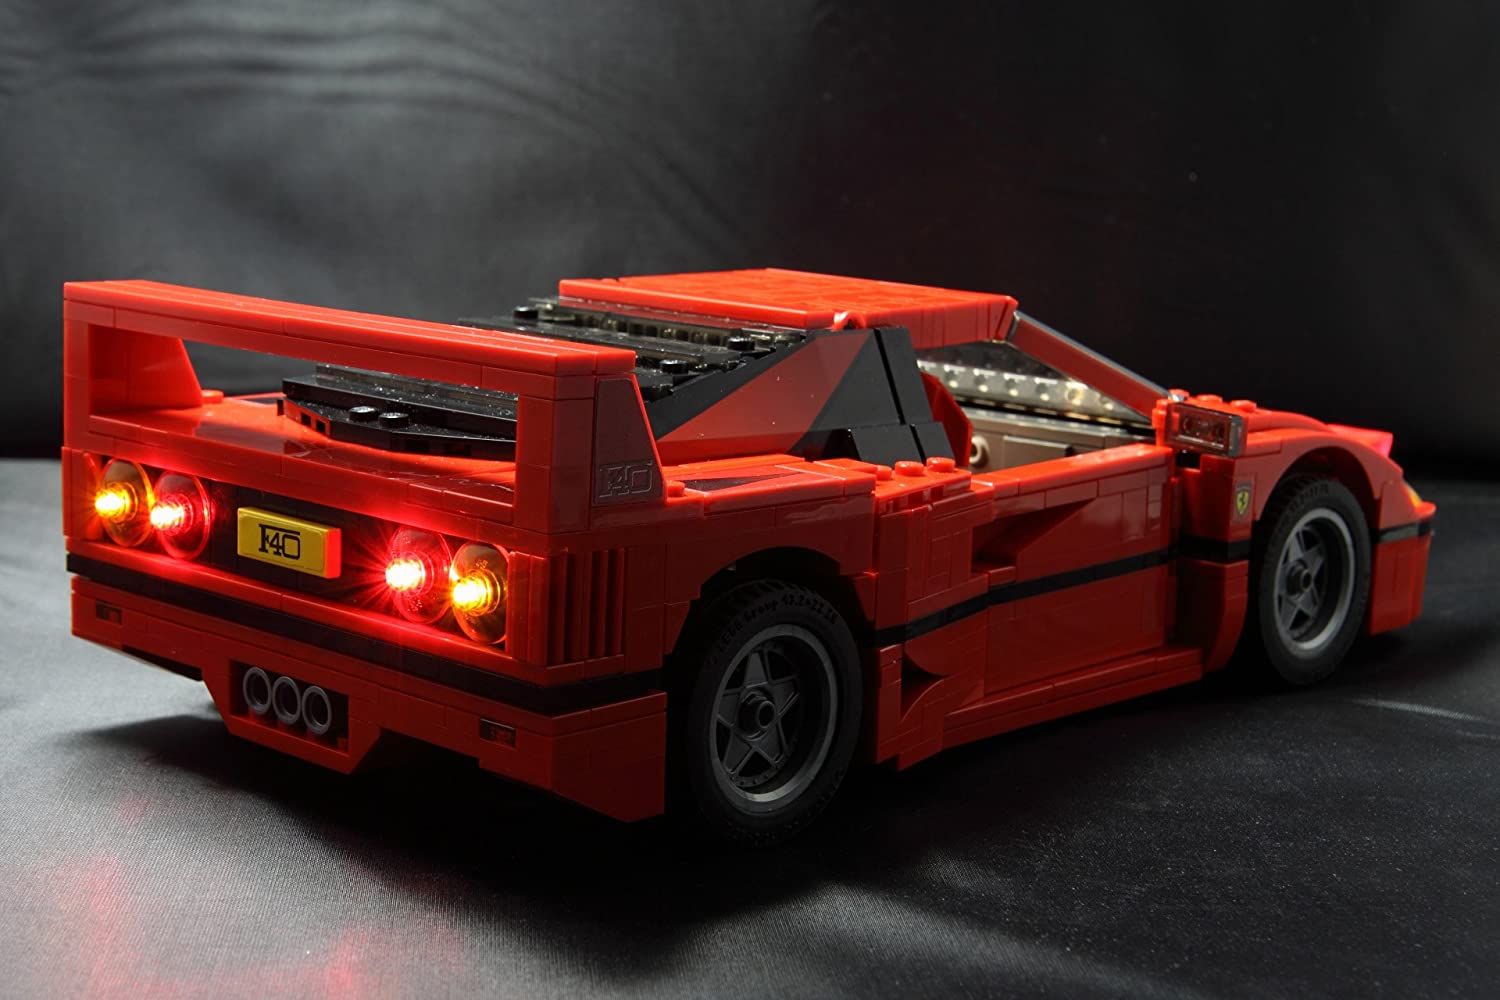 Amazon.com: Brick Loot Lighting Kit for Your Lego Ferrari F40 Set 10248 (Lego Set NOT Included): Toys & Games